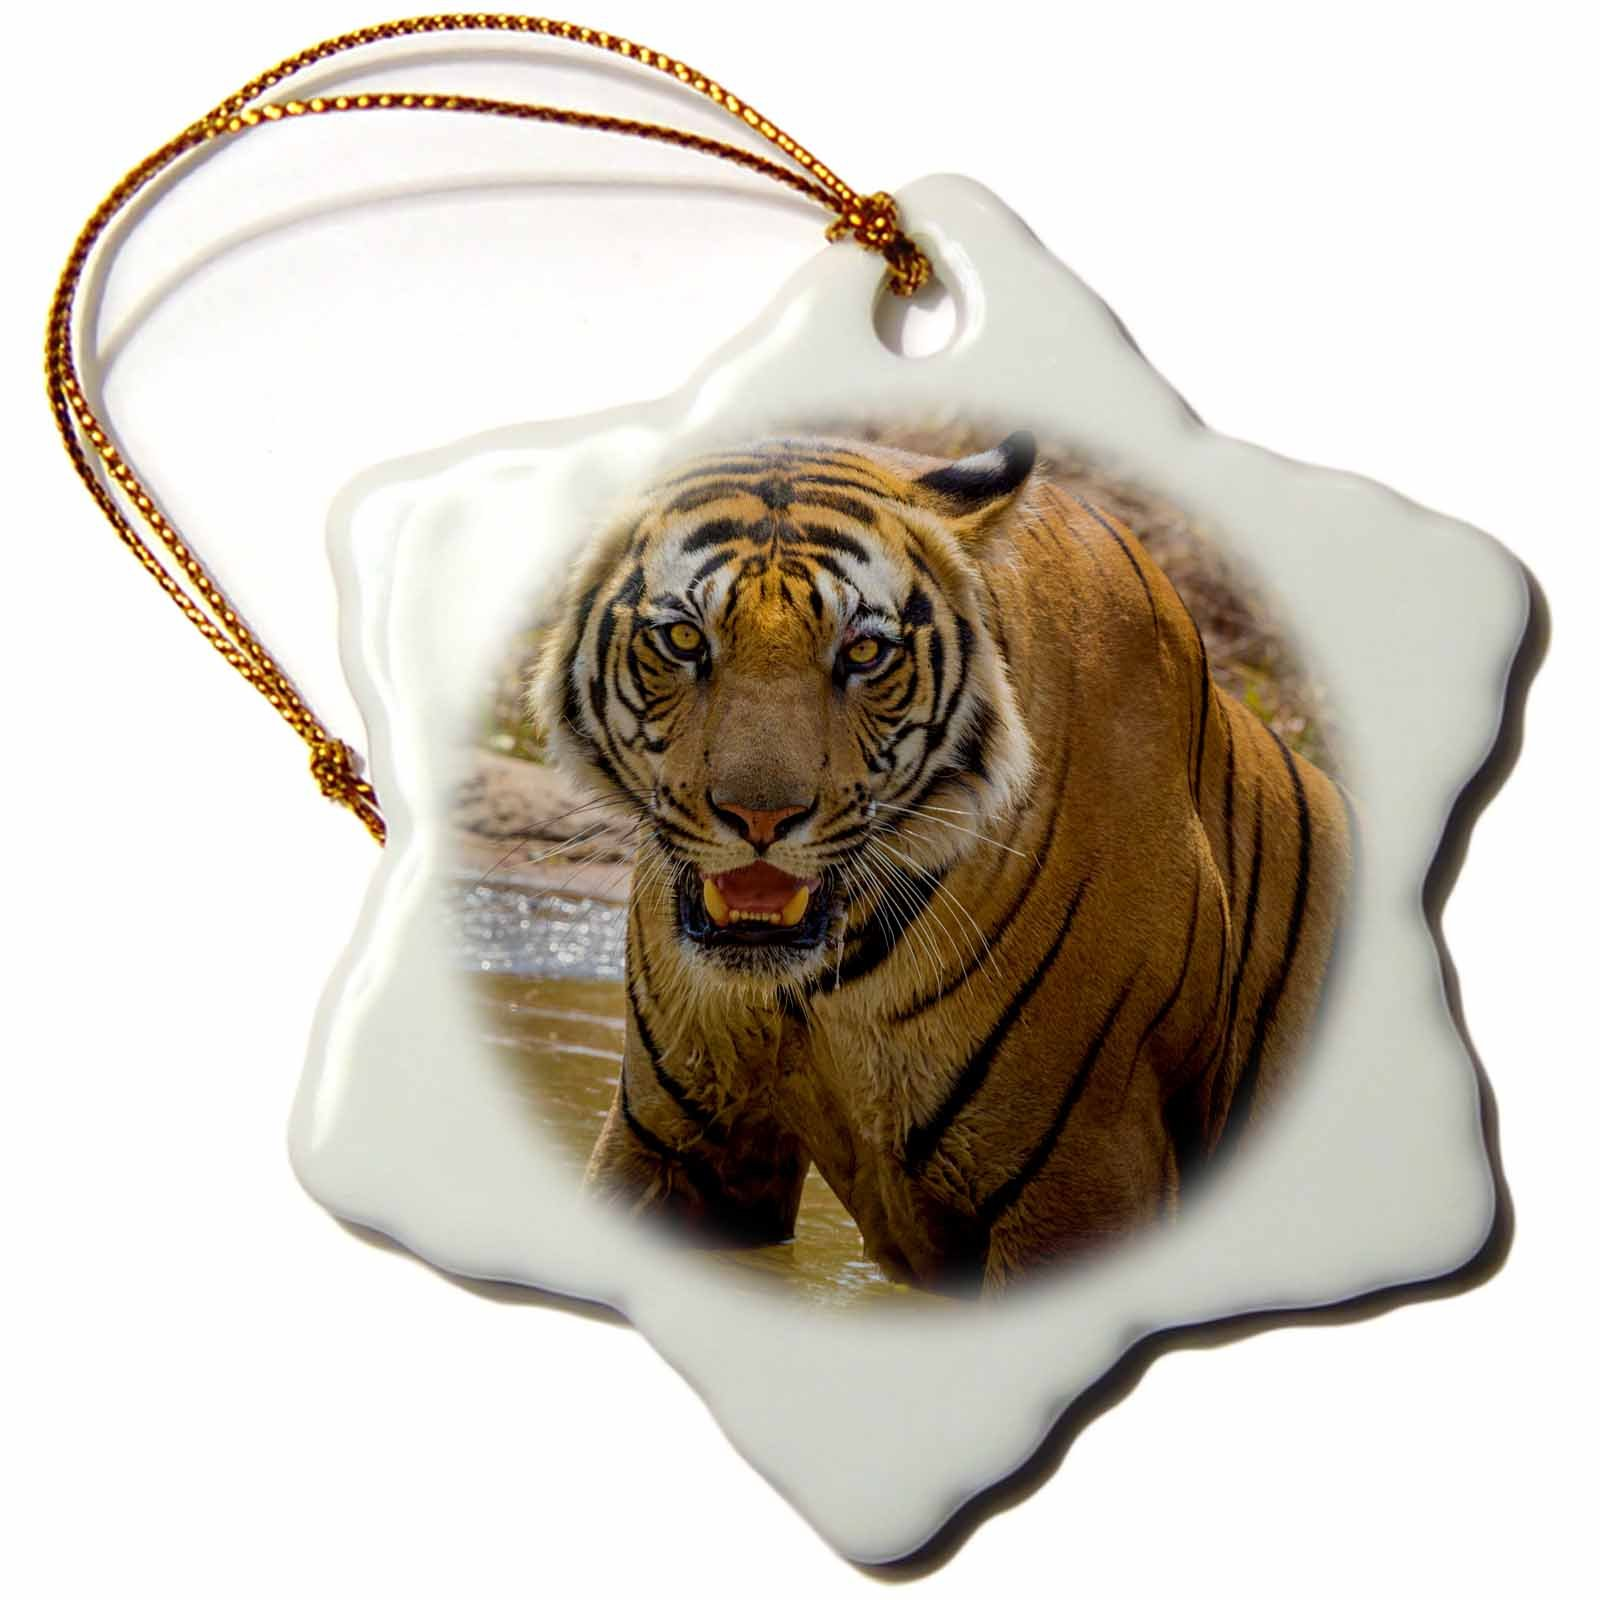 3dRose Danita Delimont - Big Cats - India, Bandhavgarh Tiger Reserve. Fierce gaze of a Bengal tiger. - 3 inch Snowflake Porcelain Ornament (orn_276807_1)